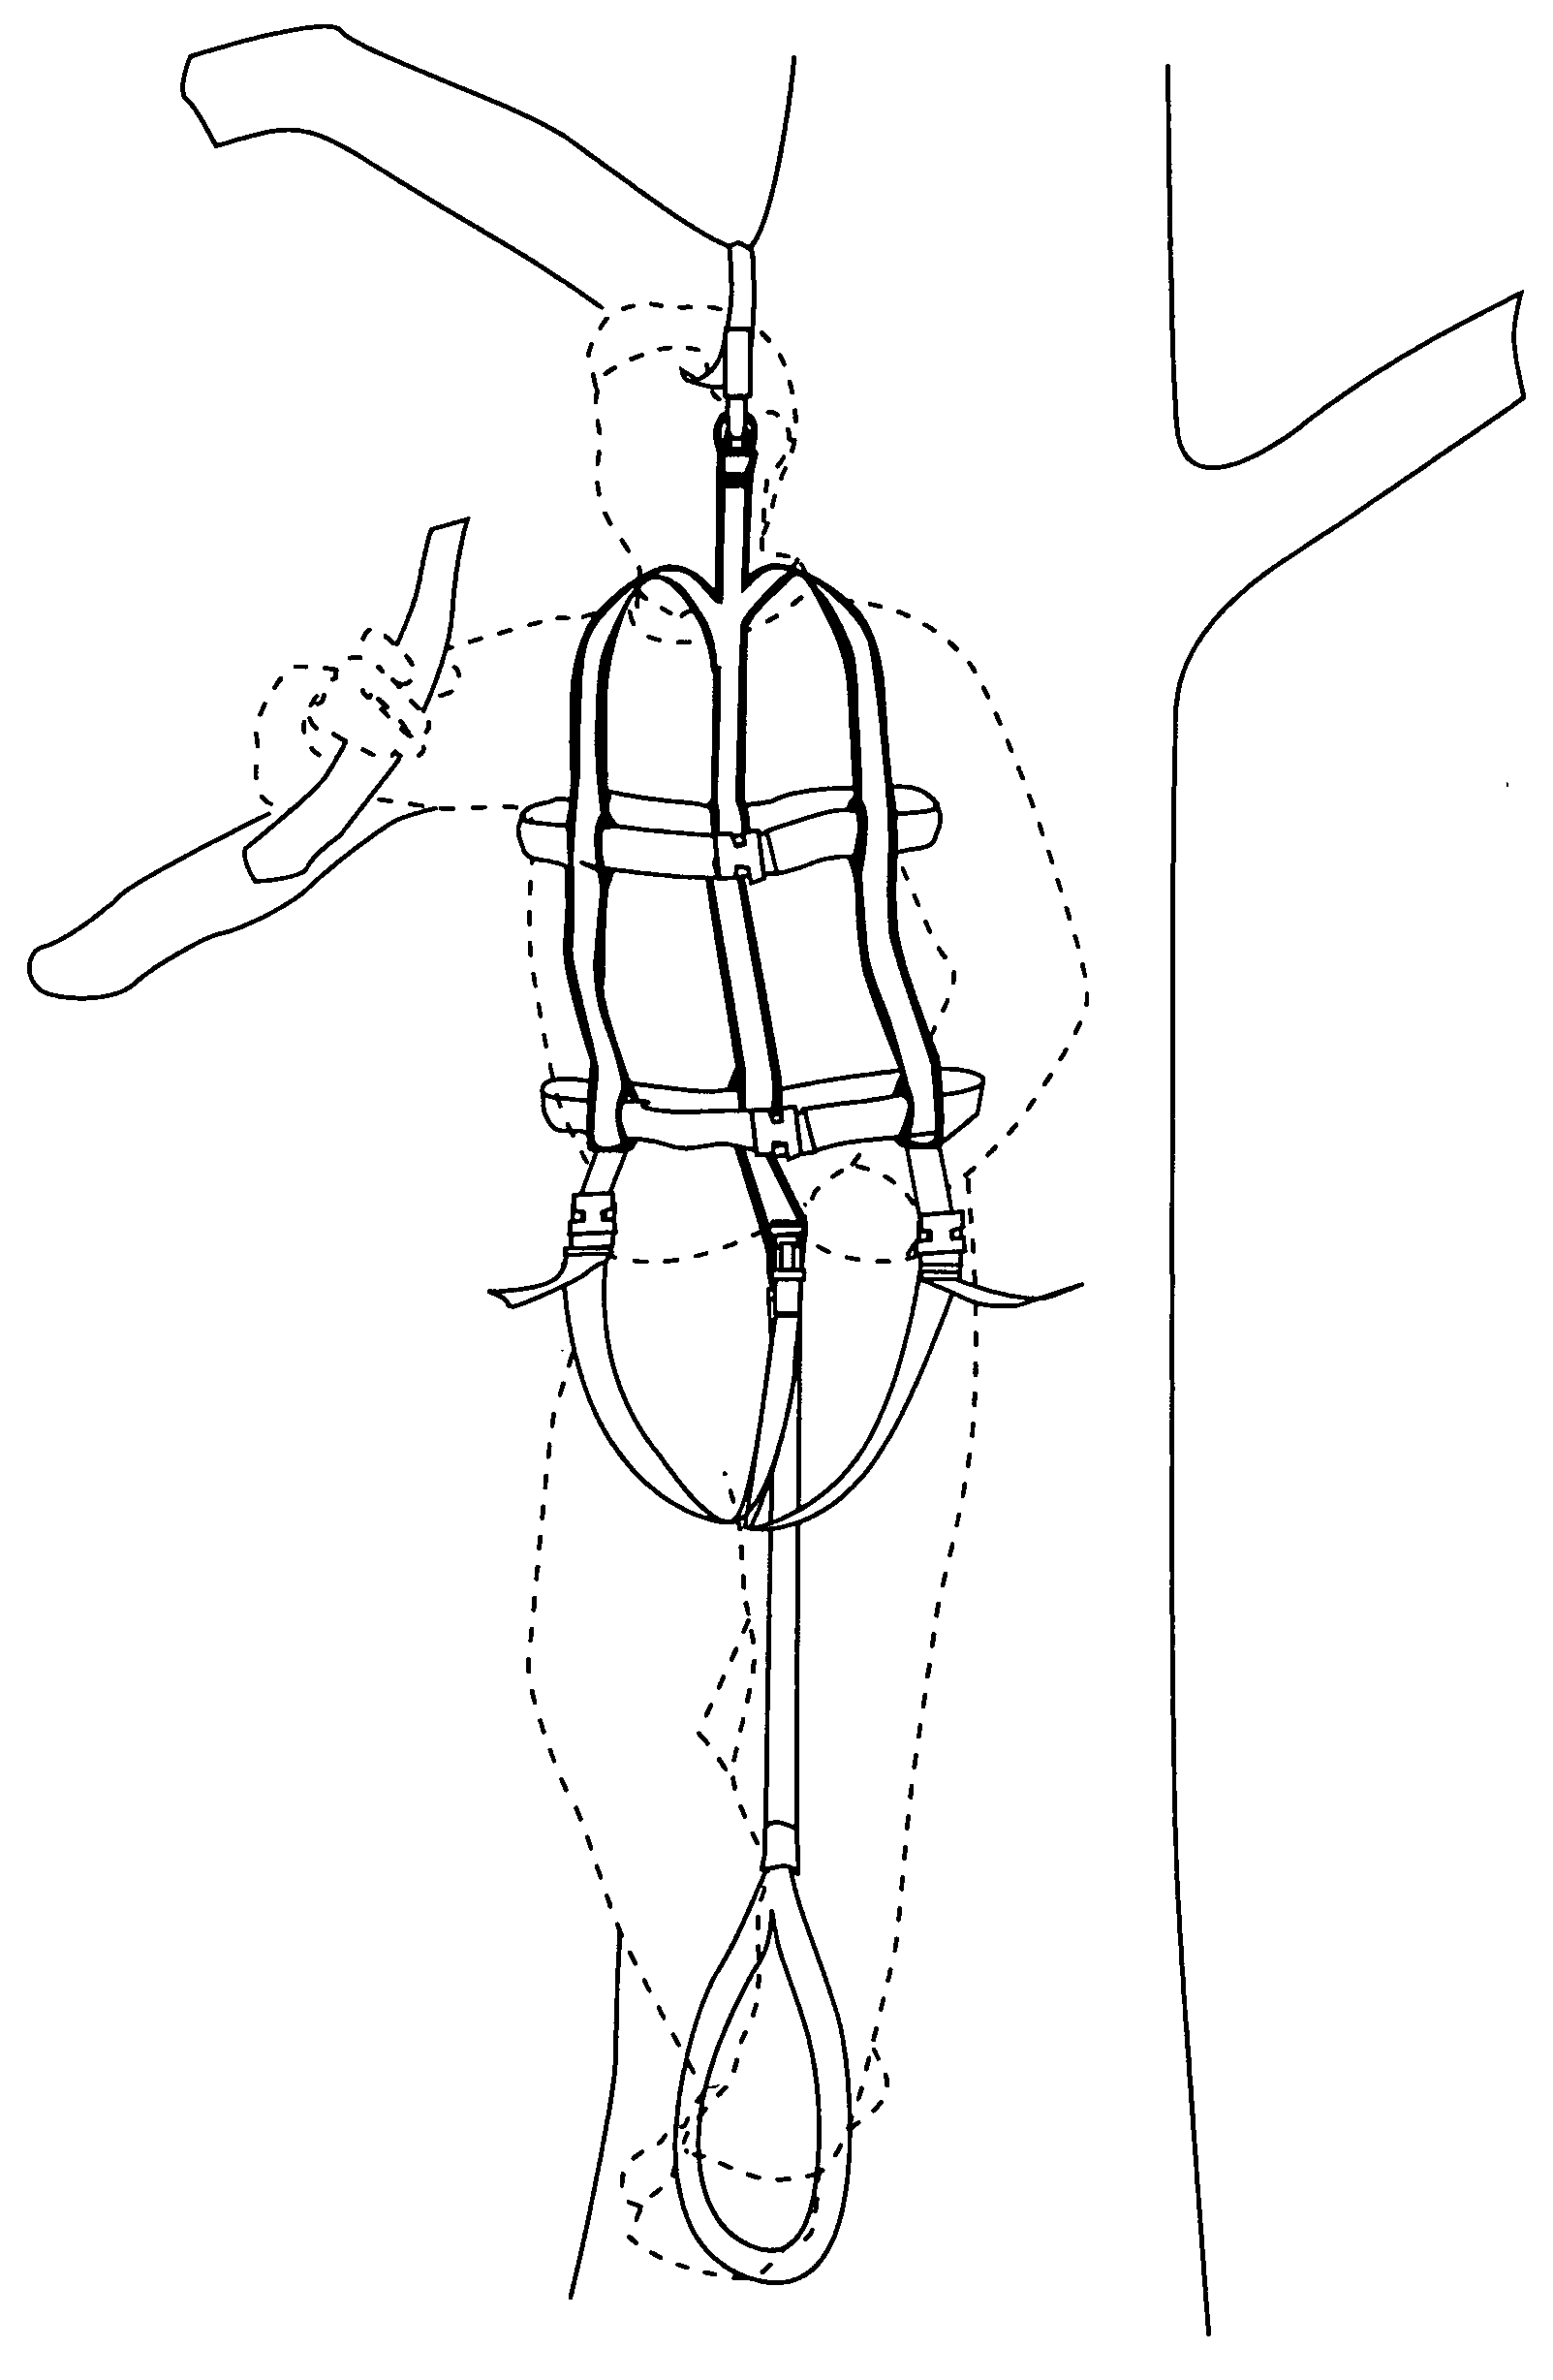 suspension harness foot straps